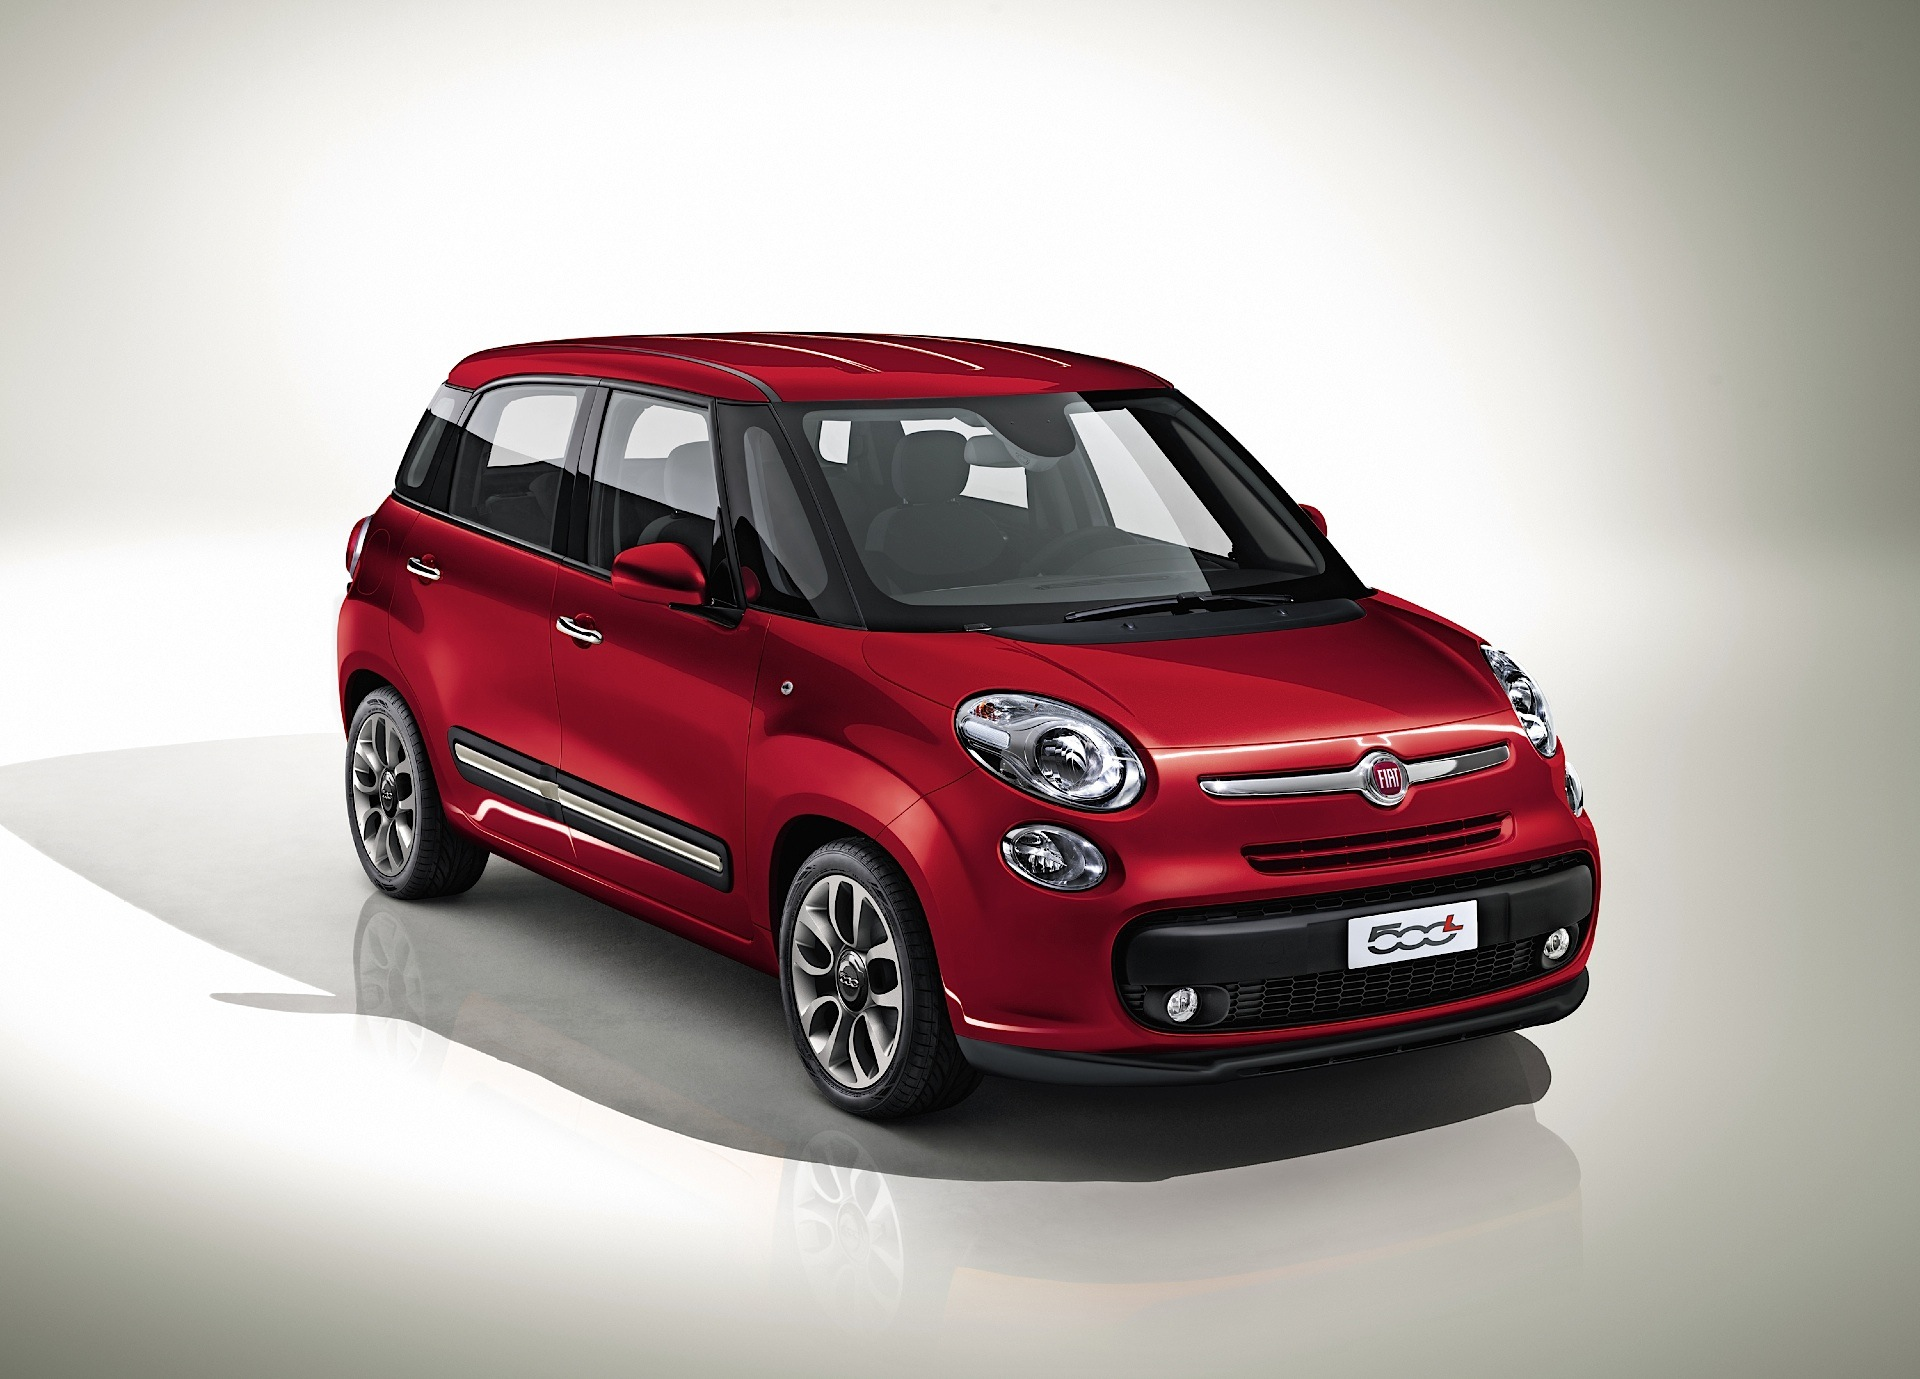 fiat 500l specs 2012 2013 2014 2015 2016 2017 autoevolution. Black Bedroom Furniture Sets. Home Design Ideas